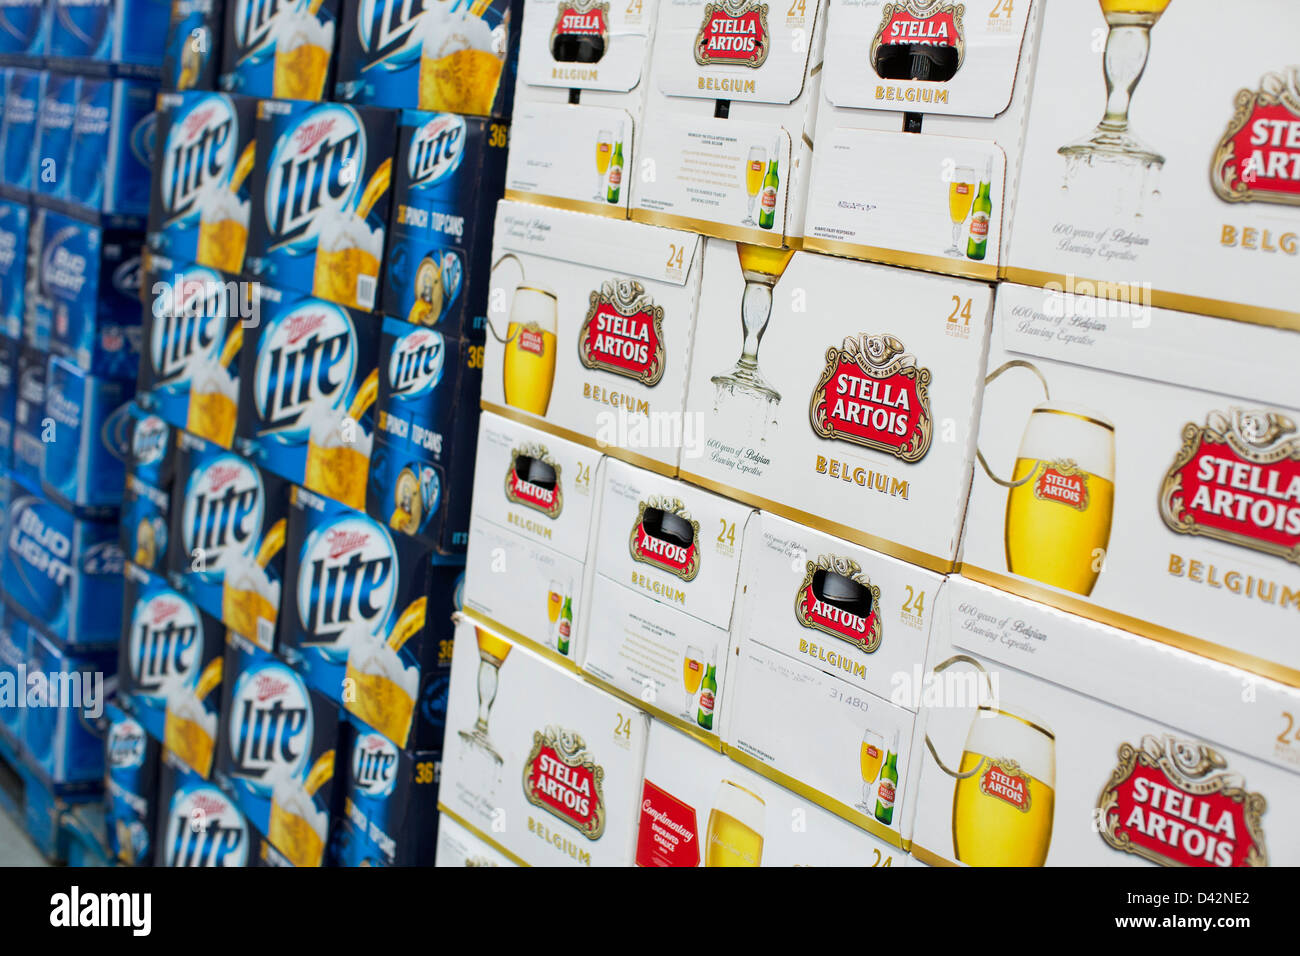 Stella Artois and Miller Lite beer on display at a Costco Wholesale Warehouse Club. - Stock Image